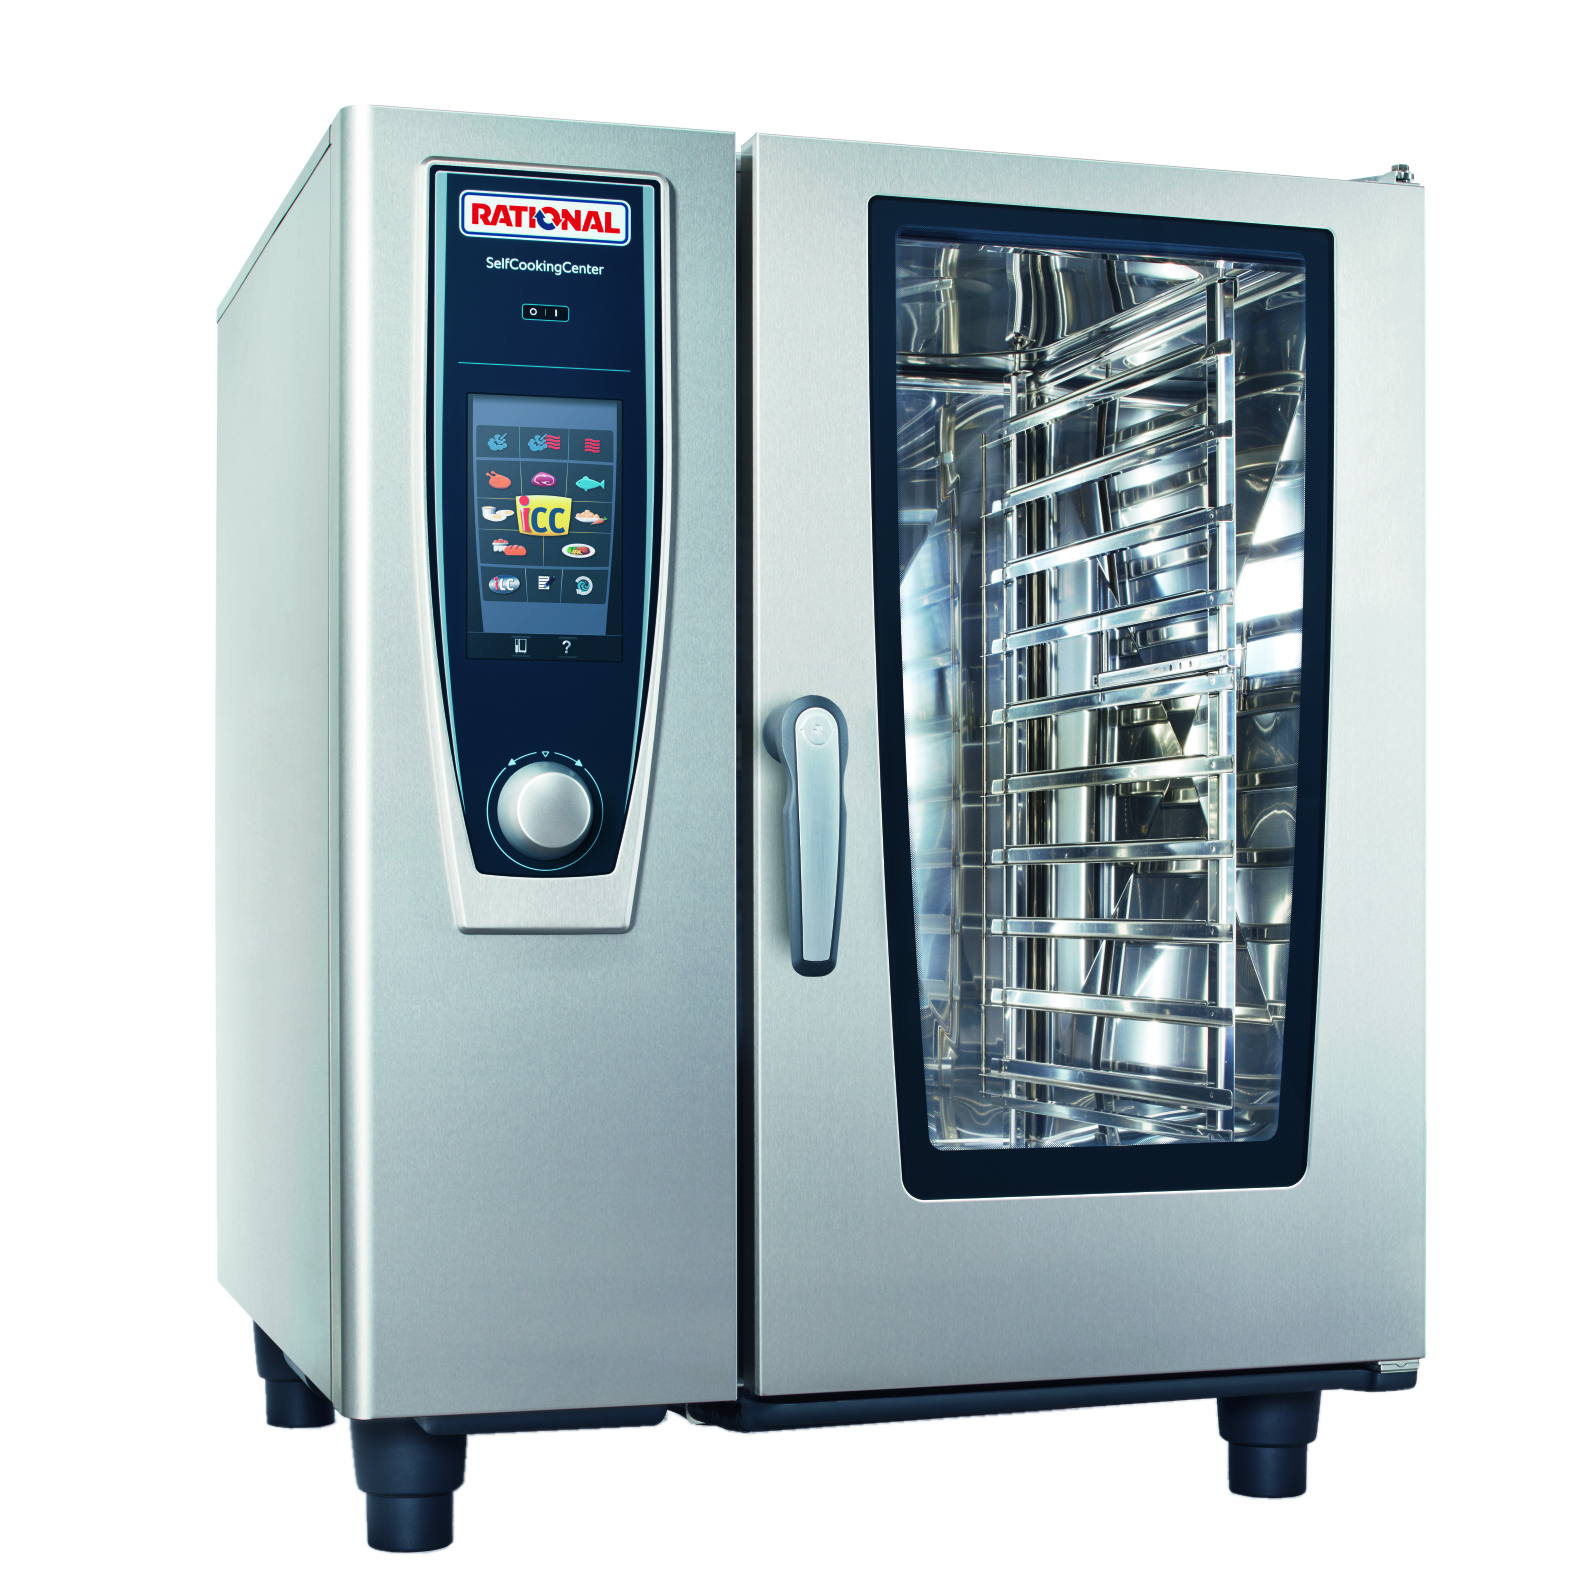 RATIONAL B118206.19D combi oven, gas